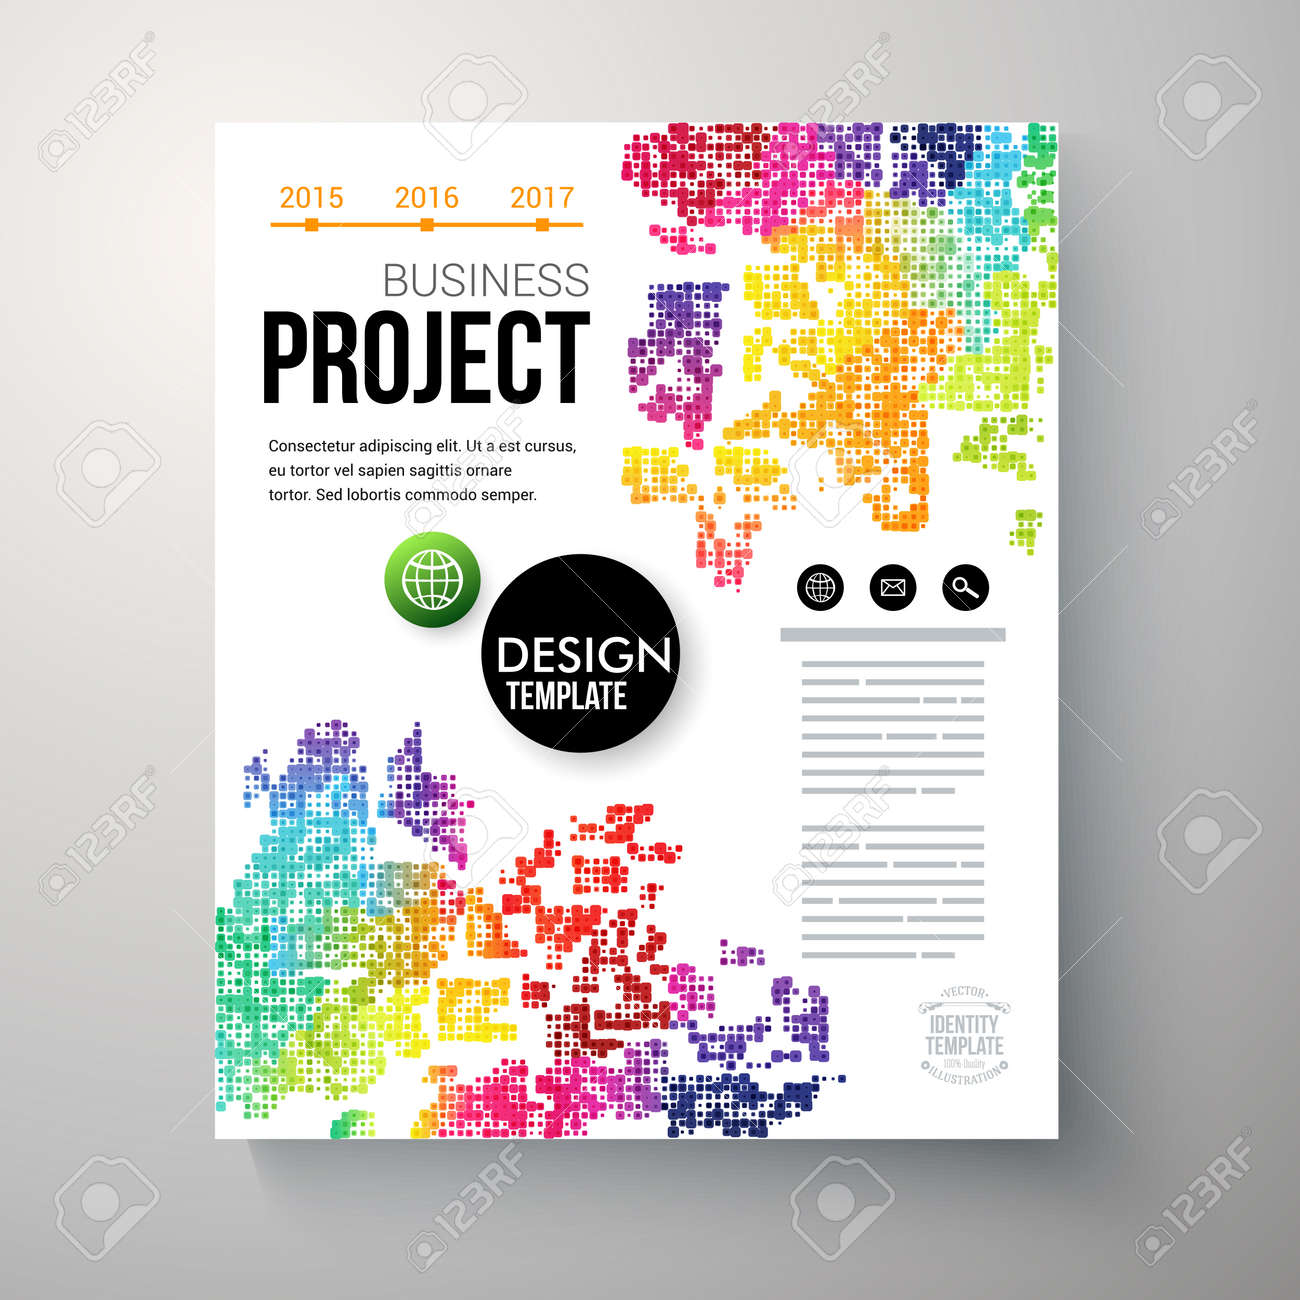 Design Template For A Business Project With Colorful Rainbow – Project Design Template